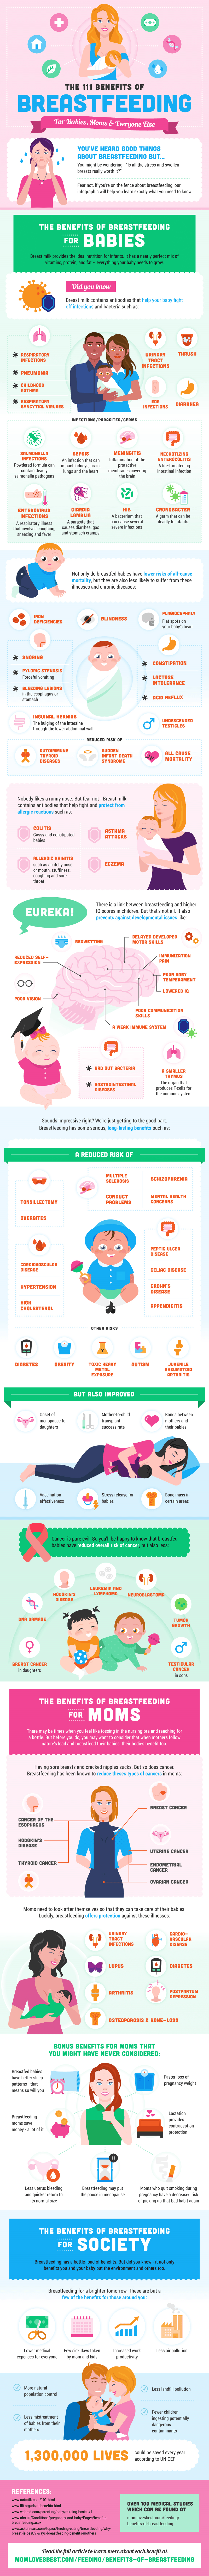 The-Benefits-Of-Breastfeeding-Infographic-by-MomLovesBest-HQ